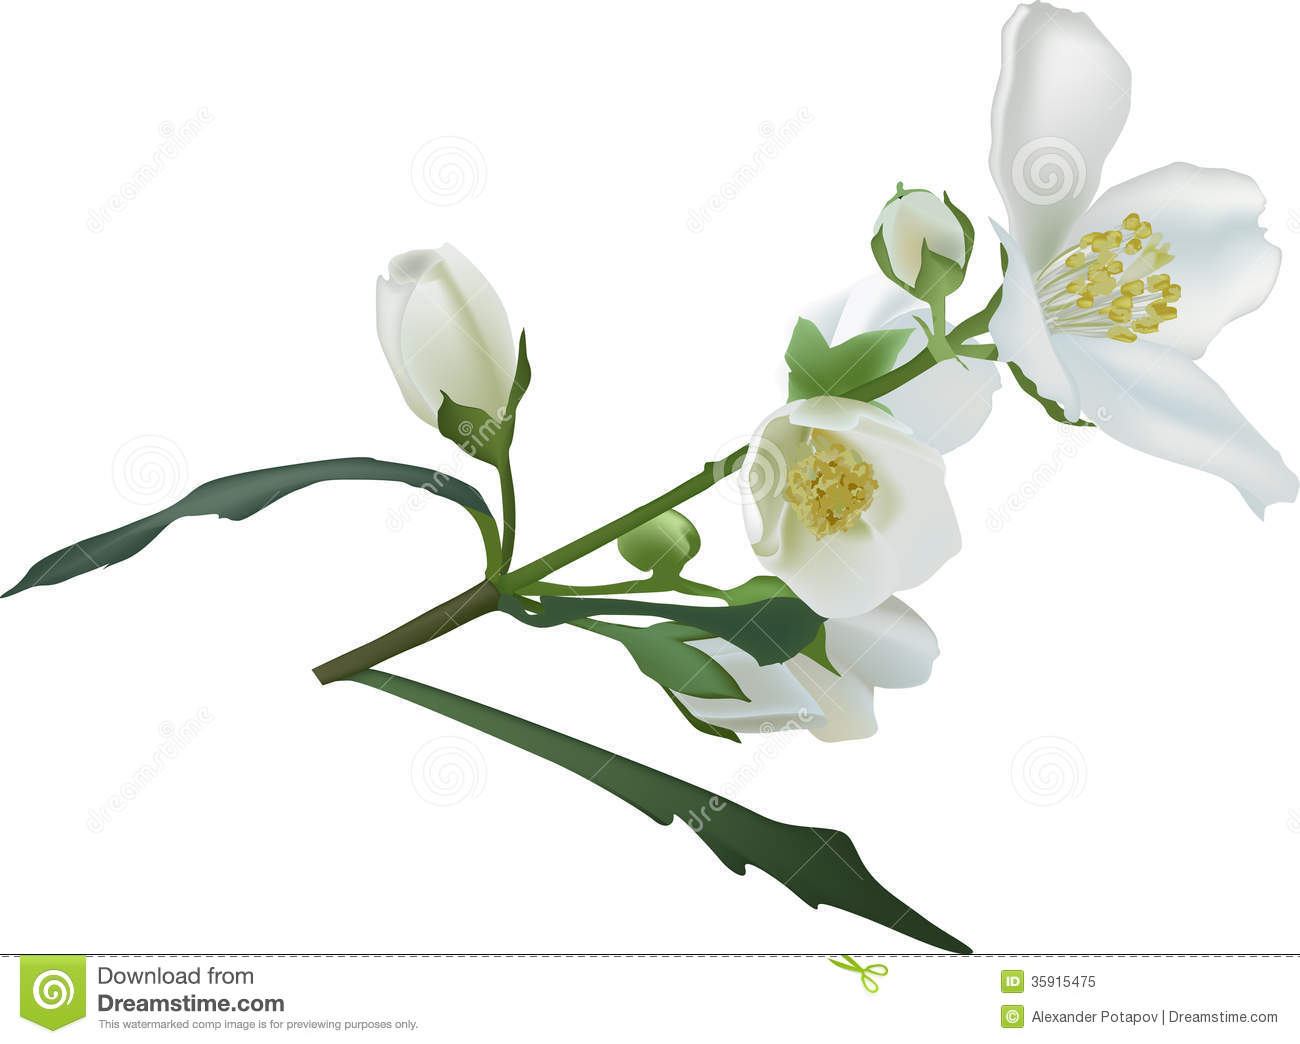 Jasmine Flower Vector Free Download Jasmine flower branch isolated